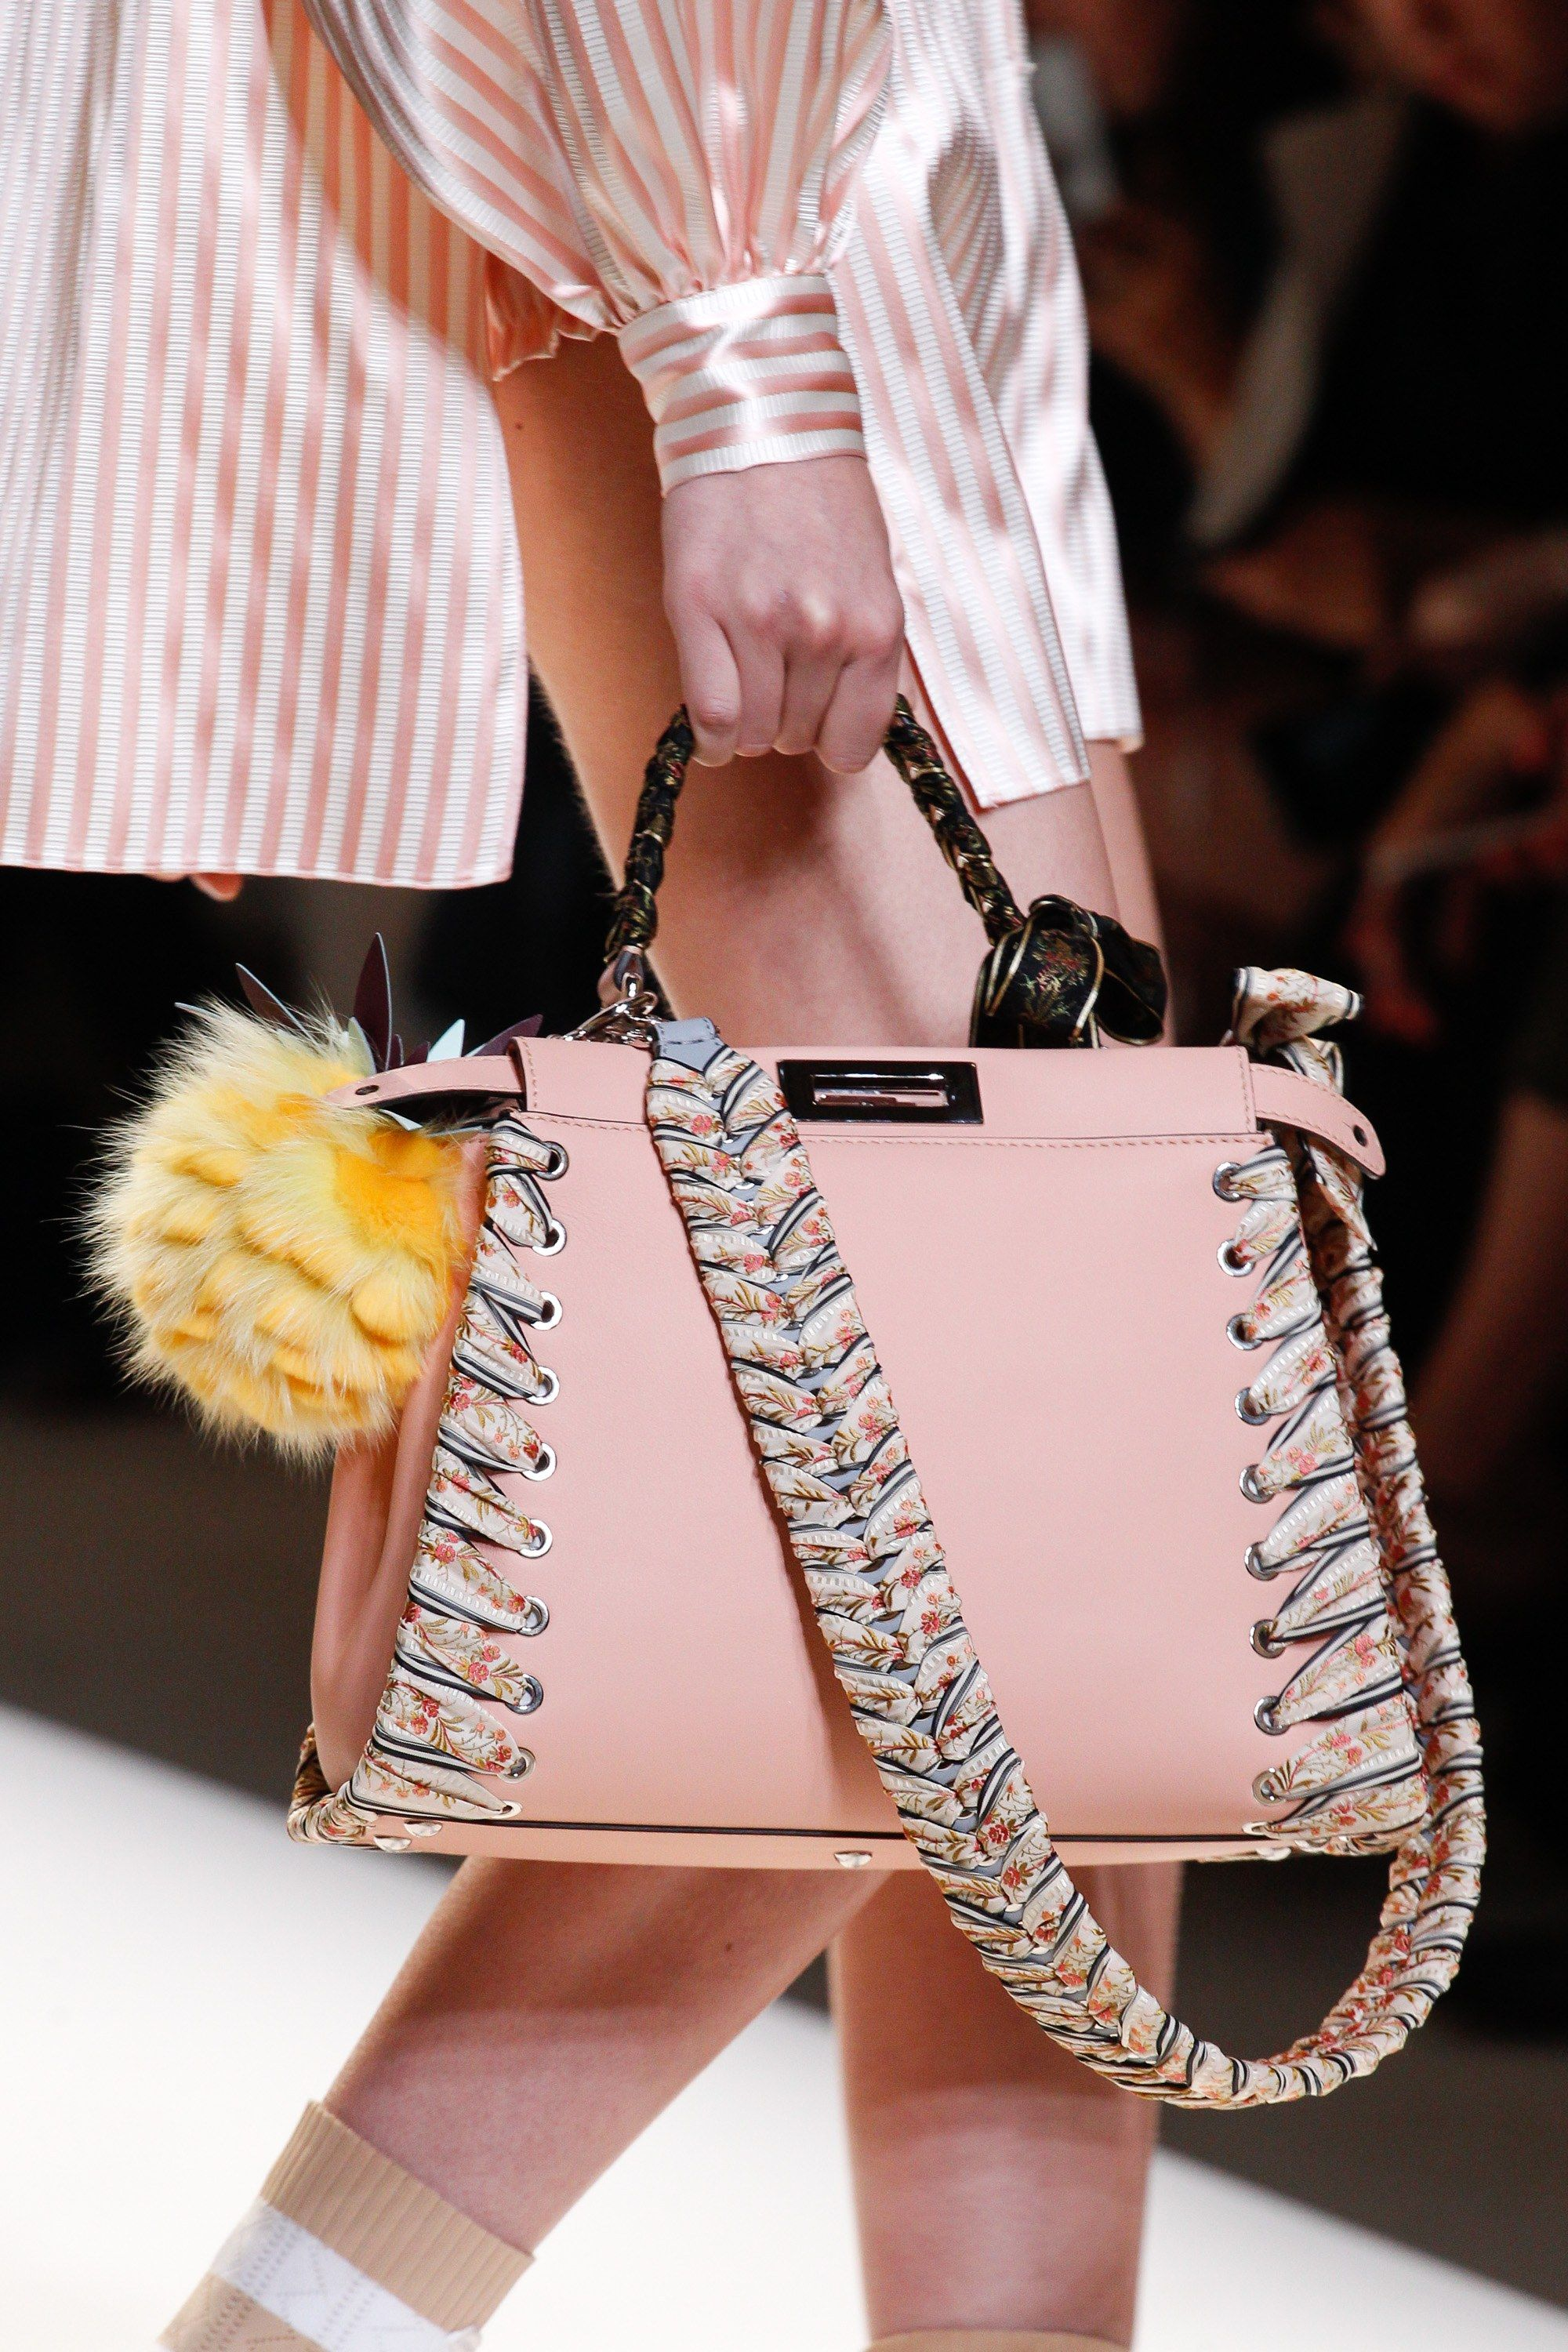 Fendi Spring 2017 Ready-to-Wear collection by Silvia Venturini Fendi and  Karl Lagerfeld 9e8751b4a96